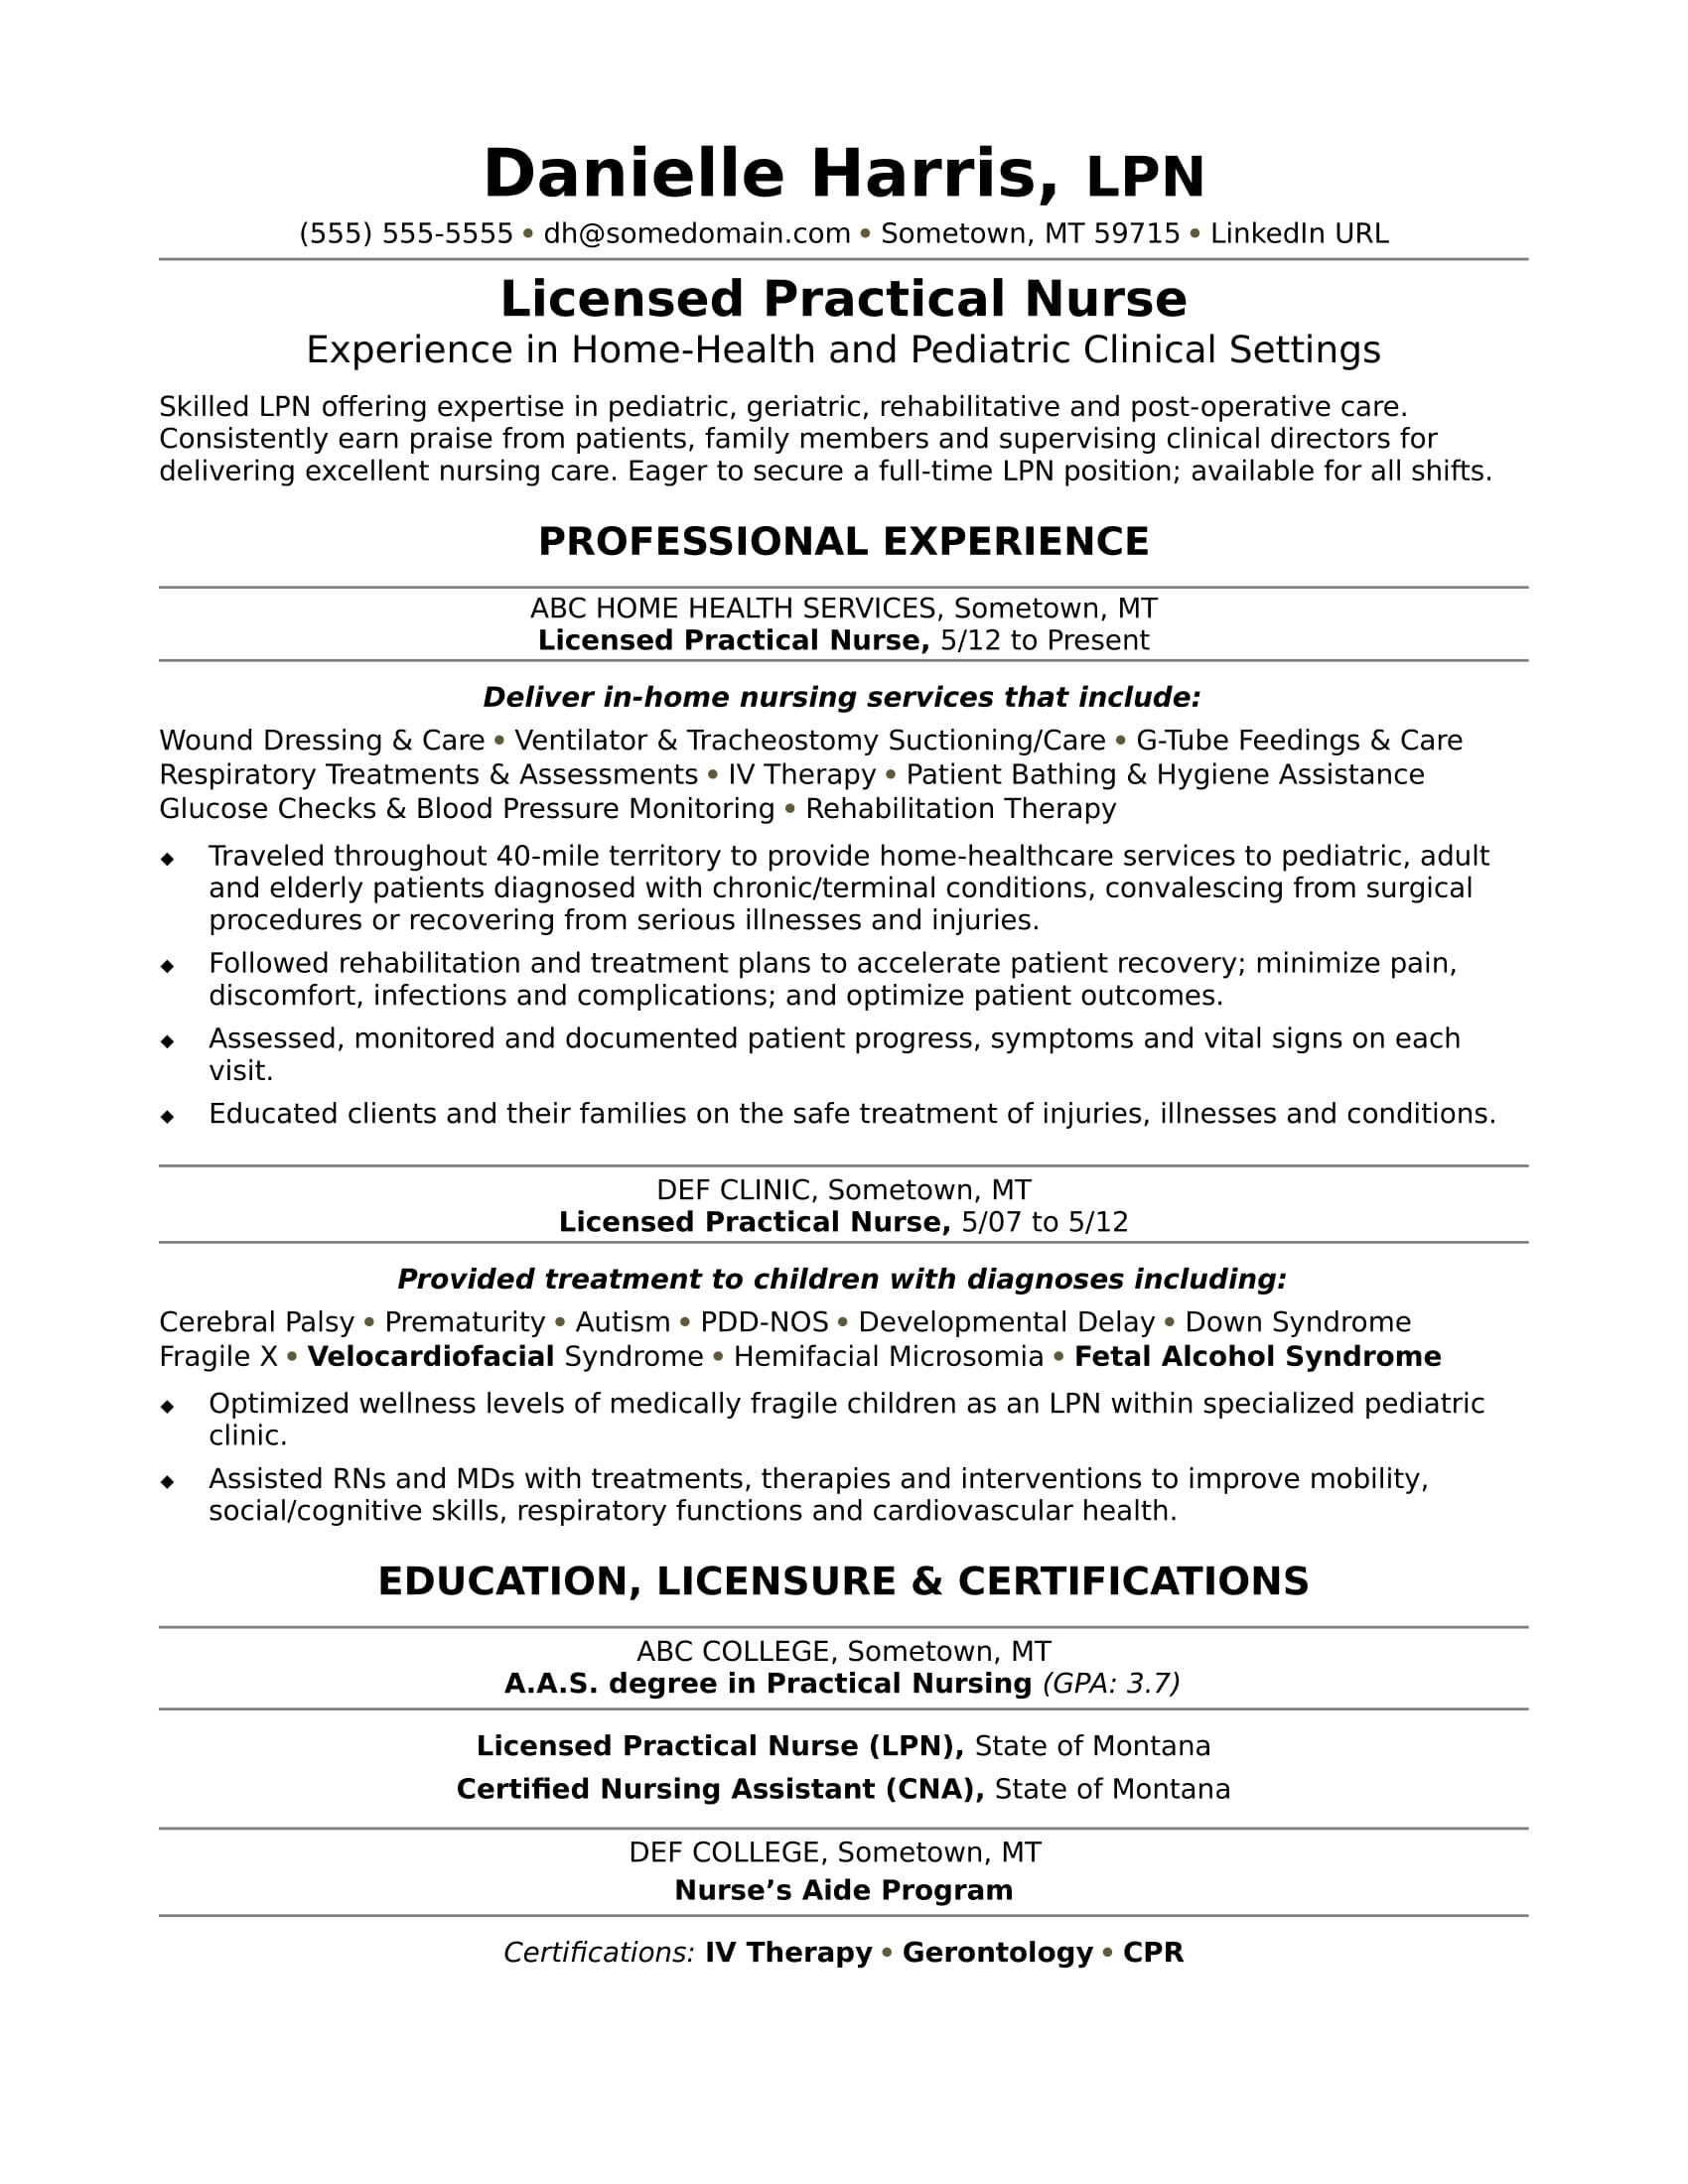 licensed practical nurse resume sample monster lpn examples assistant volleyball coach Resume Lpn Resume Examples 2019